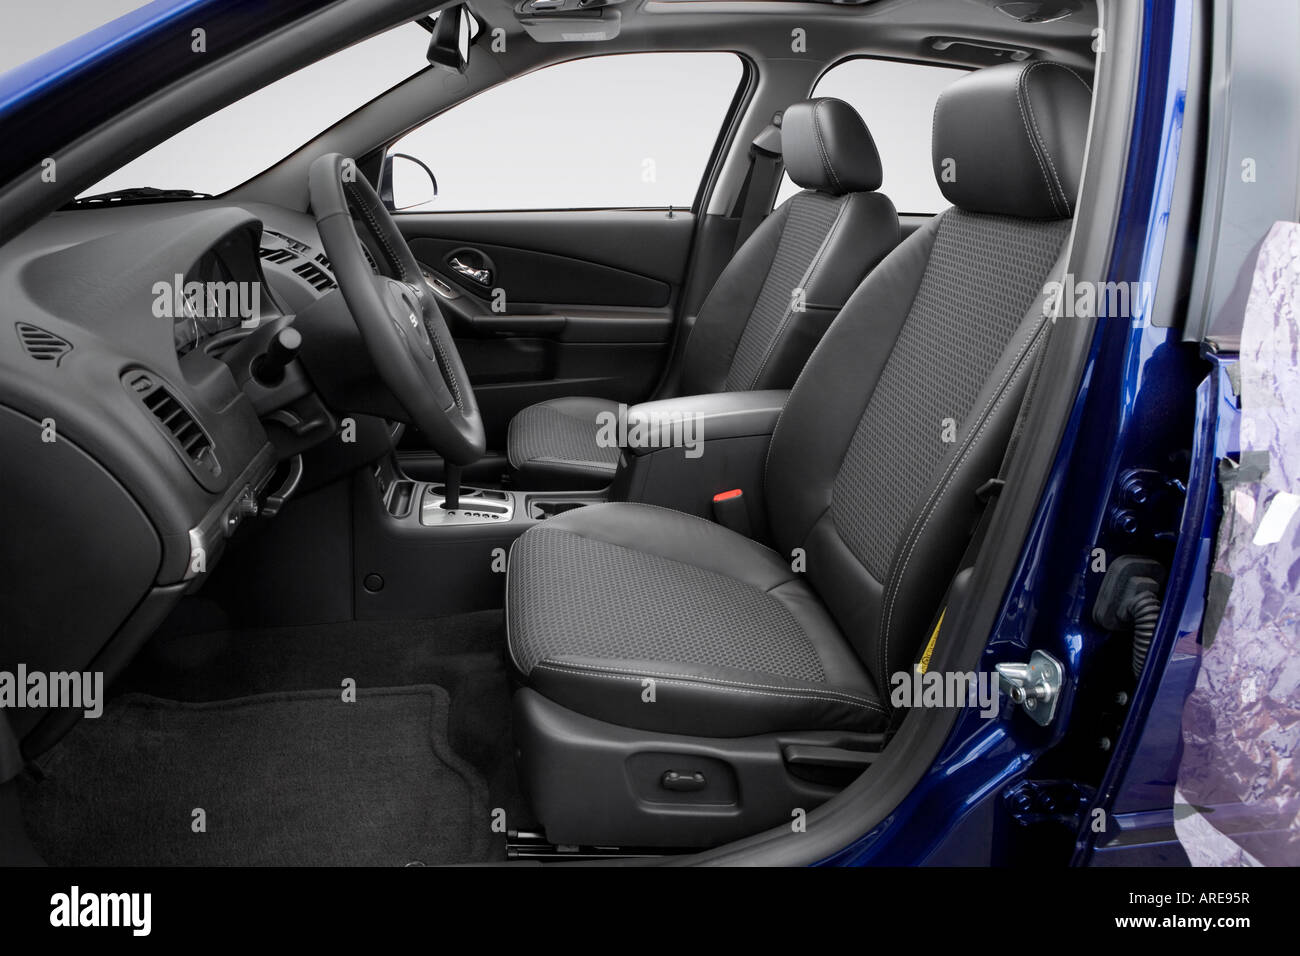 Stupendous 2006 Chevrolet Malibu Ss In Blue Front Seats Stock Photo Pabps2019 Chair Design Images Pabps2019Com